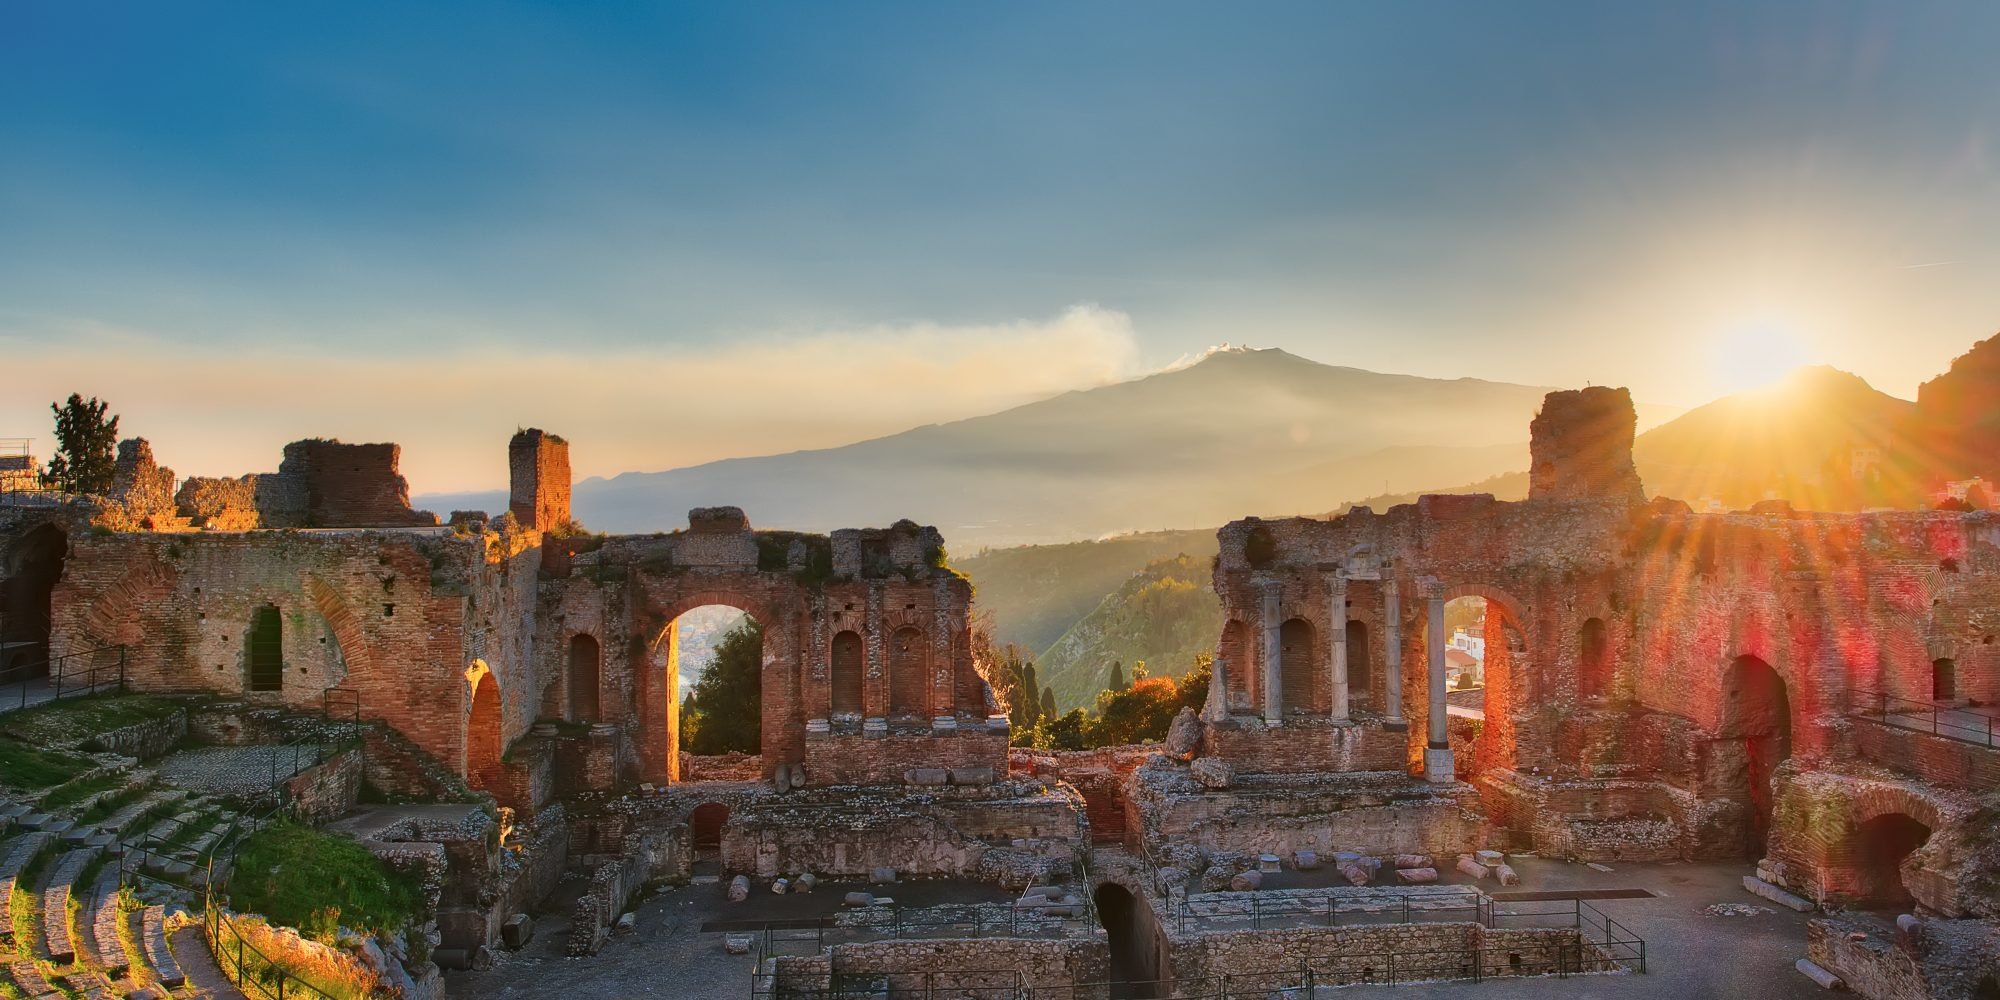 Particular of Ancient theatre of Taormina  Sicily Italy with Etna  erupting volcano at sunset